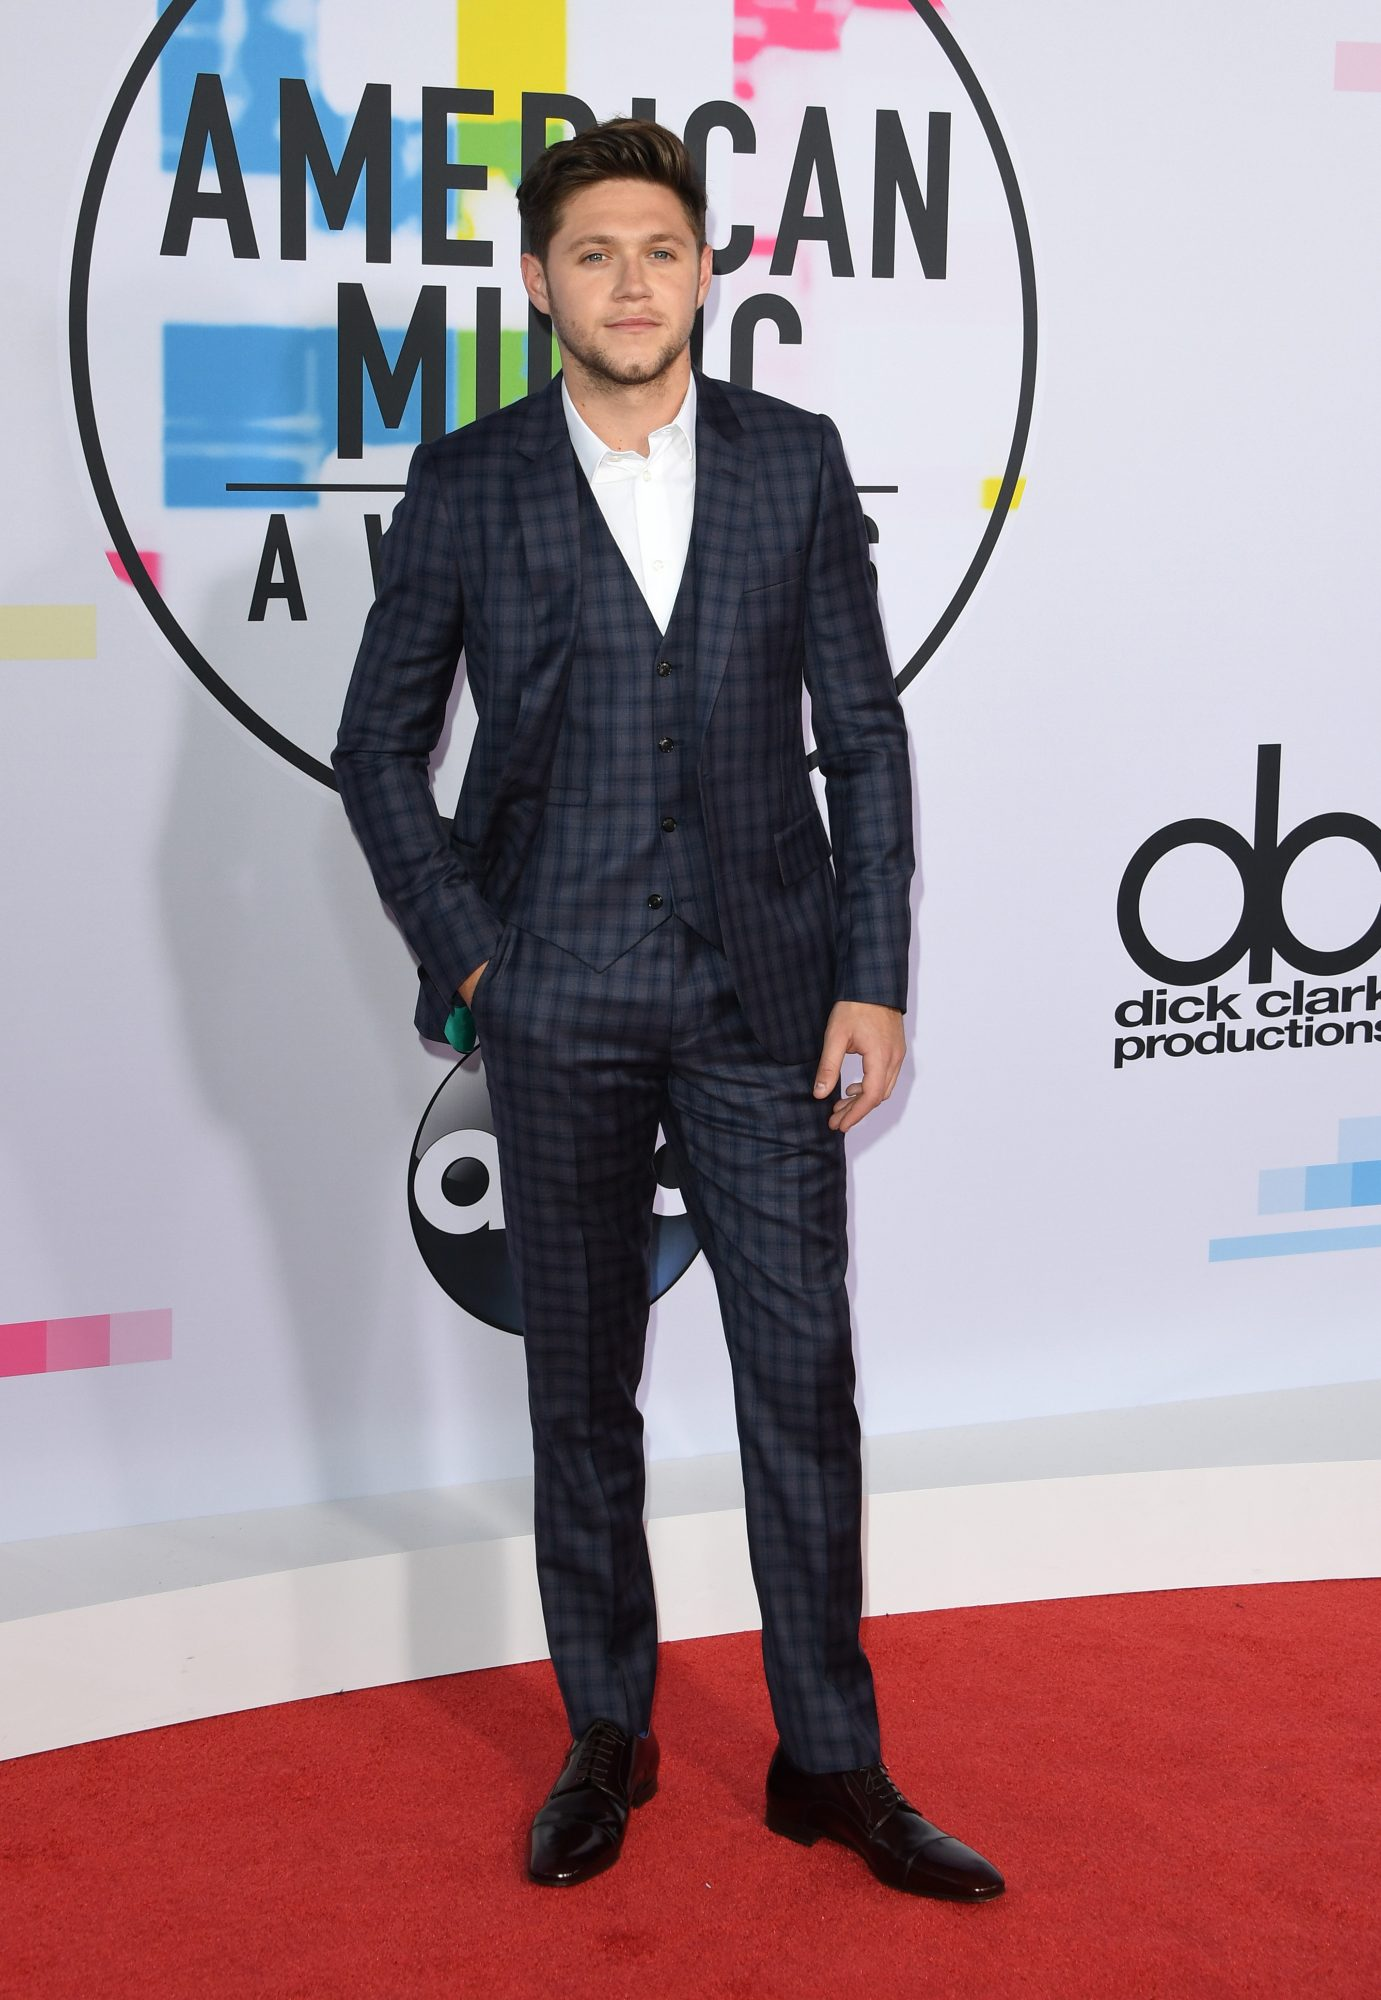 Singer Niall Horan arrives at the 2017 American Music Awards on November 19, 2017, in Los Angeles, California. / AFP PHOTO / Mark Ralston        (Photo credit should read MARK RALSTON/AFP/Getty Images)